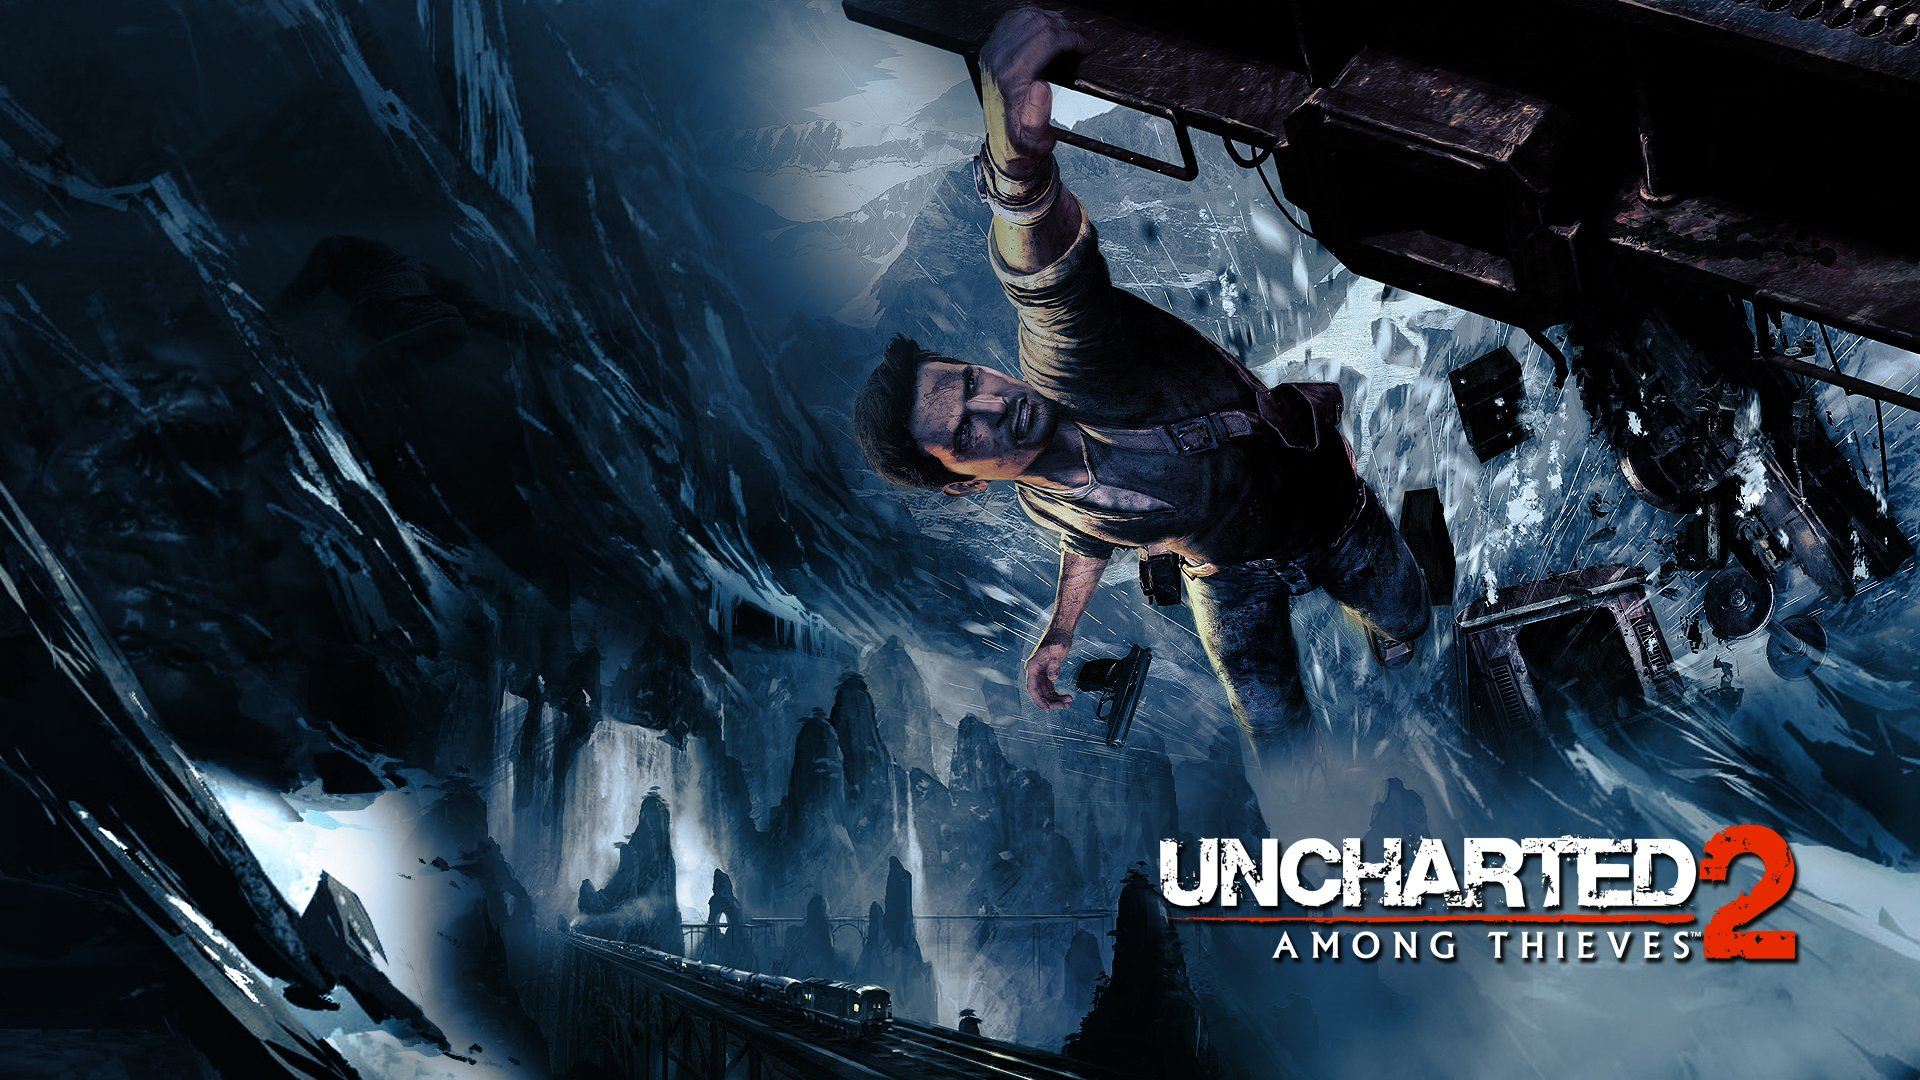 Uncharted 2 Among Thieves Wallpaper Hd Wallpaper Background